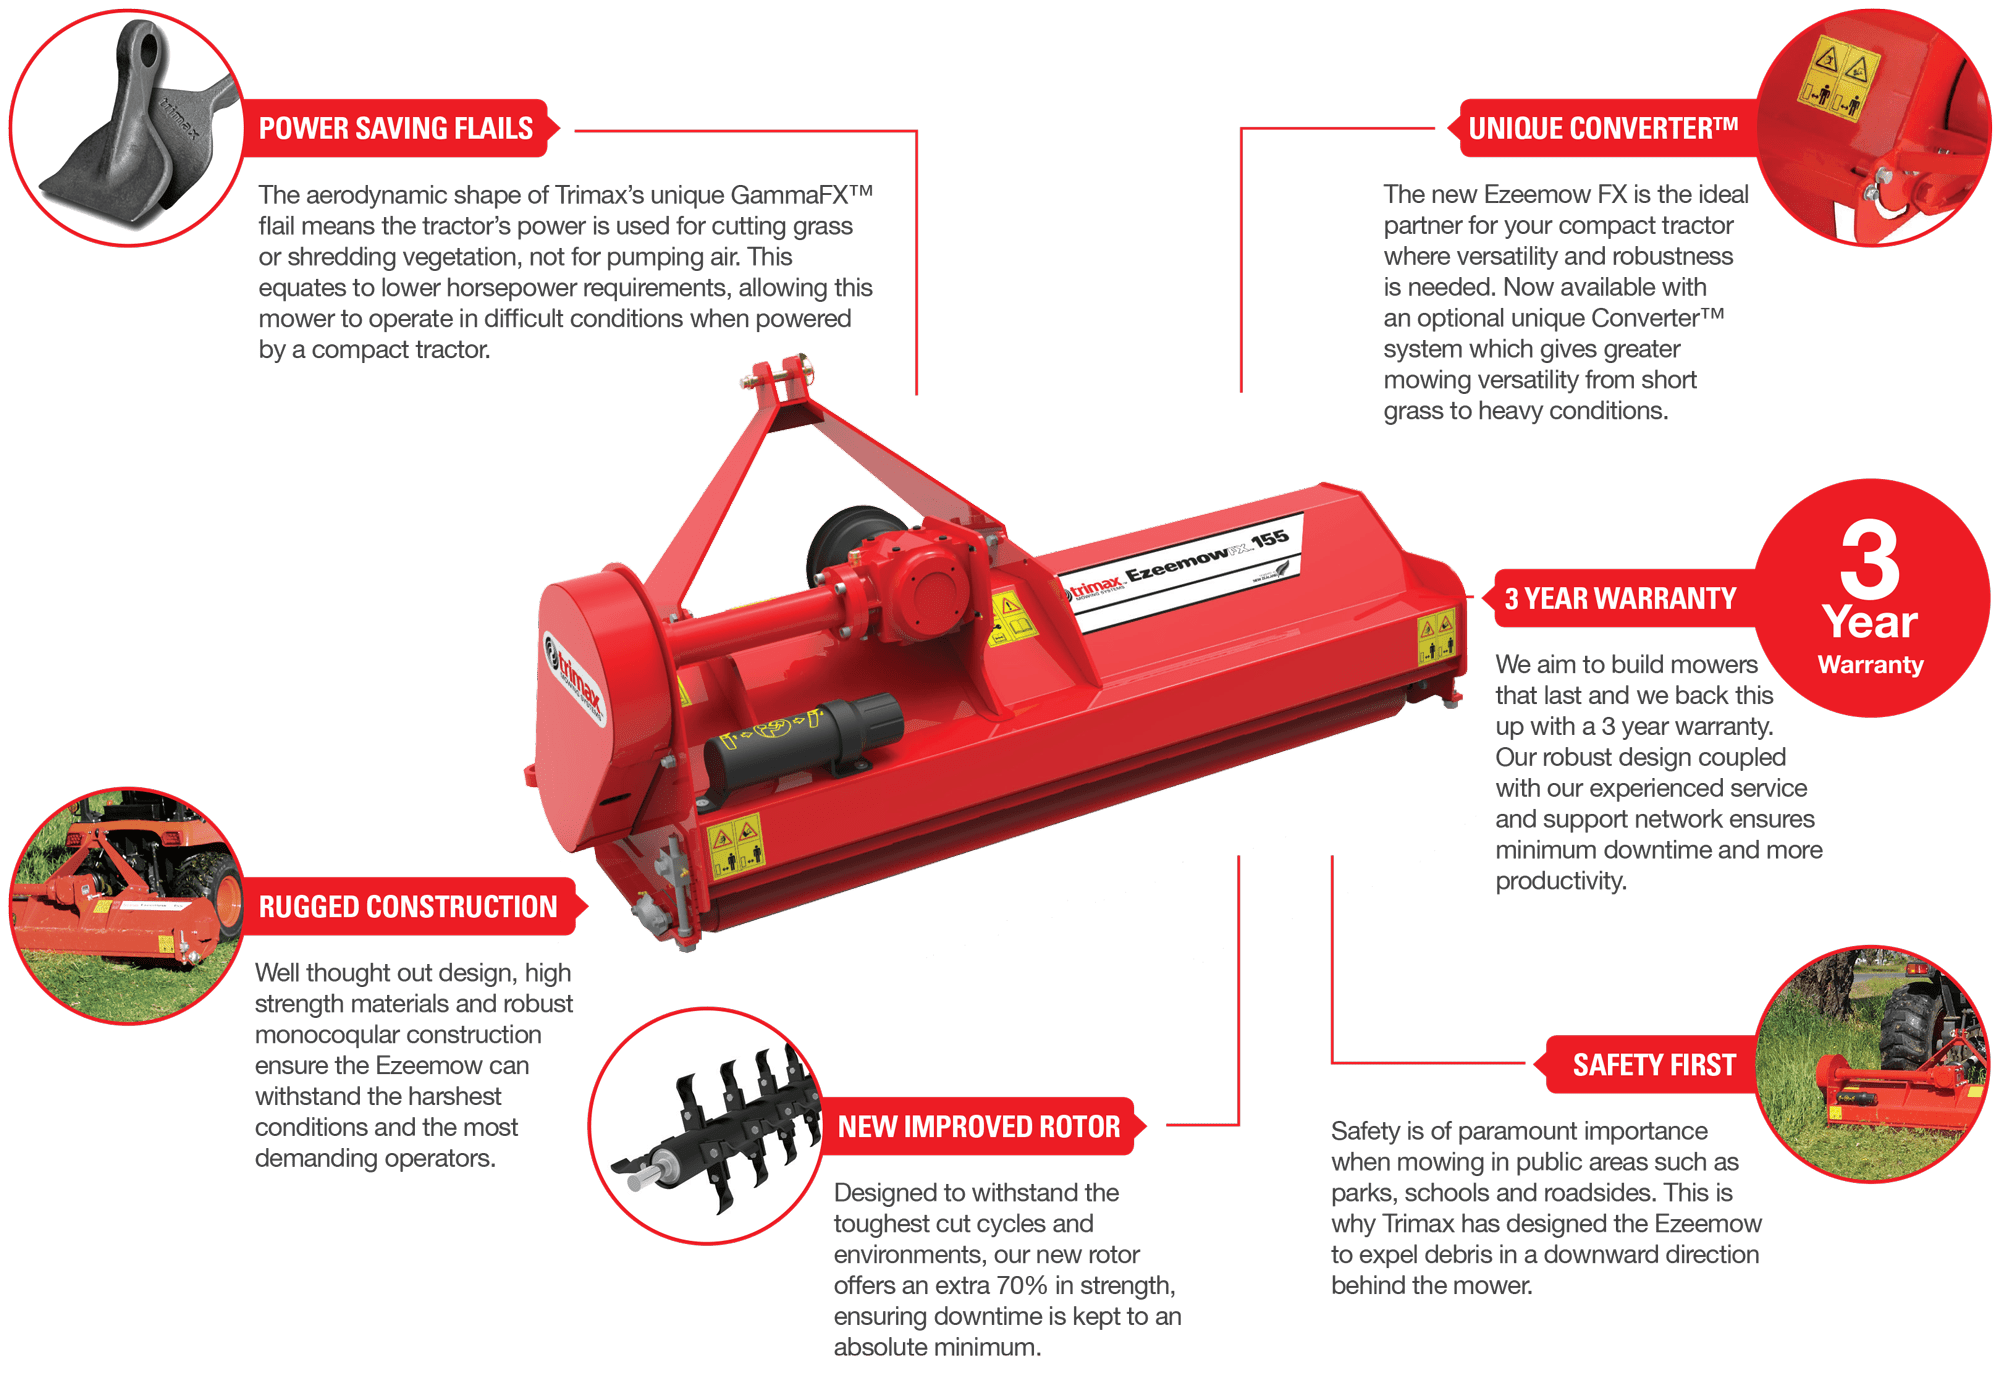 Ezeemow FX - Flail Mower for Compact Tractors | Trimax